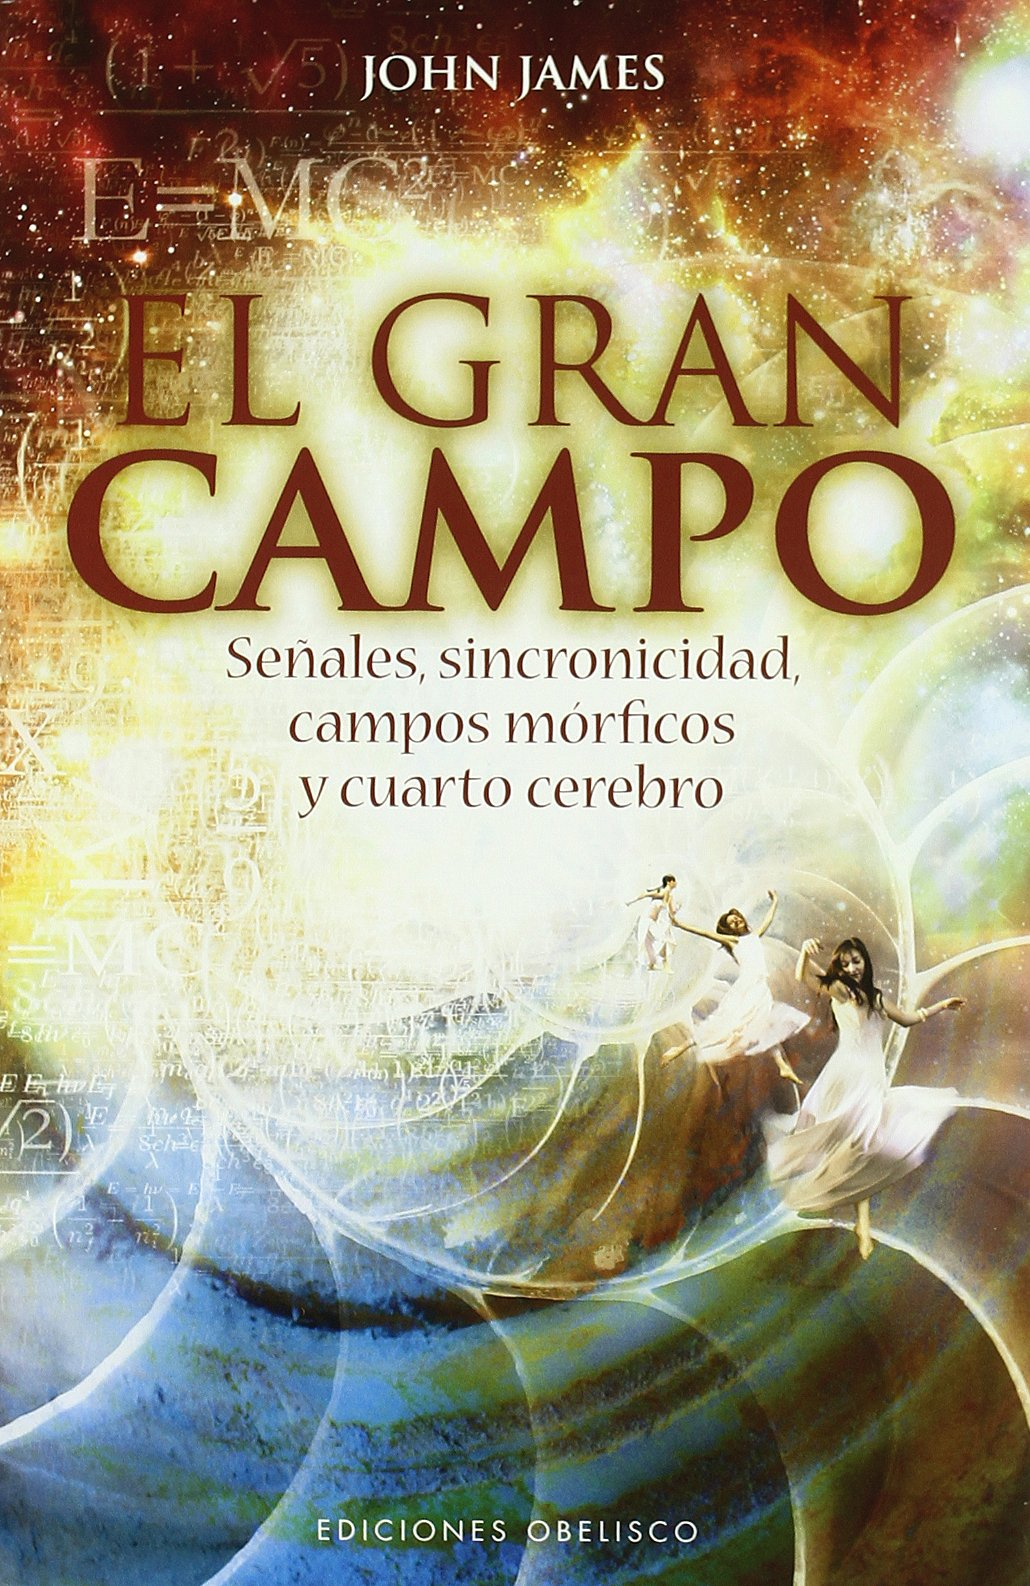 El gran campo, Jhon james